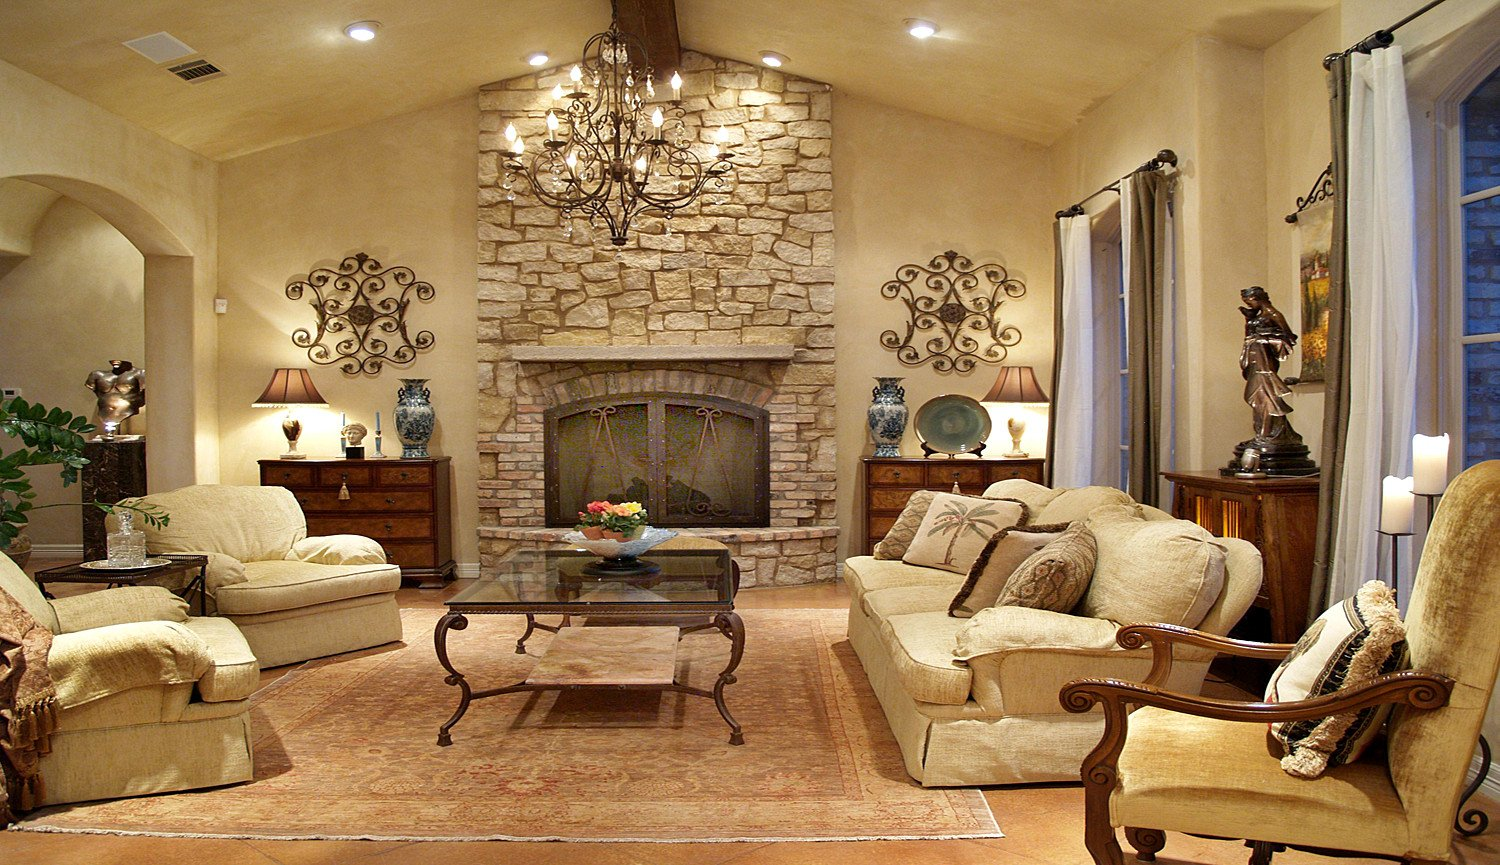 Pictures for Living Room Decor Beautiful Custom Family Room and Great Room Ideas